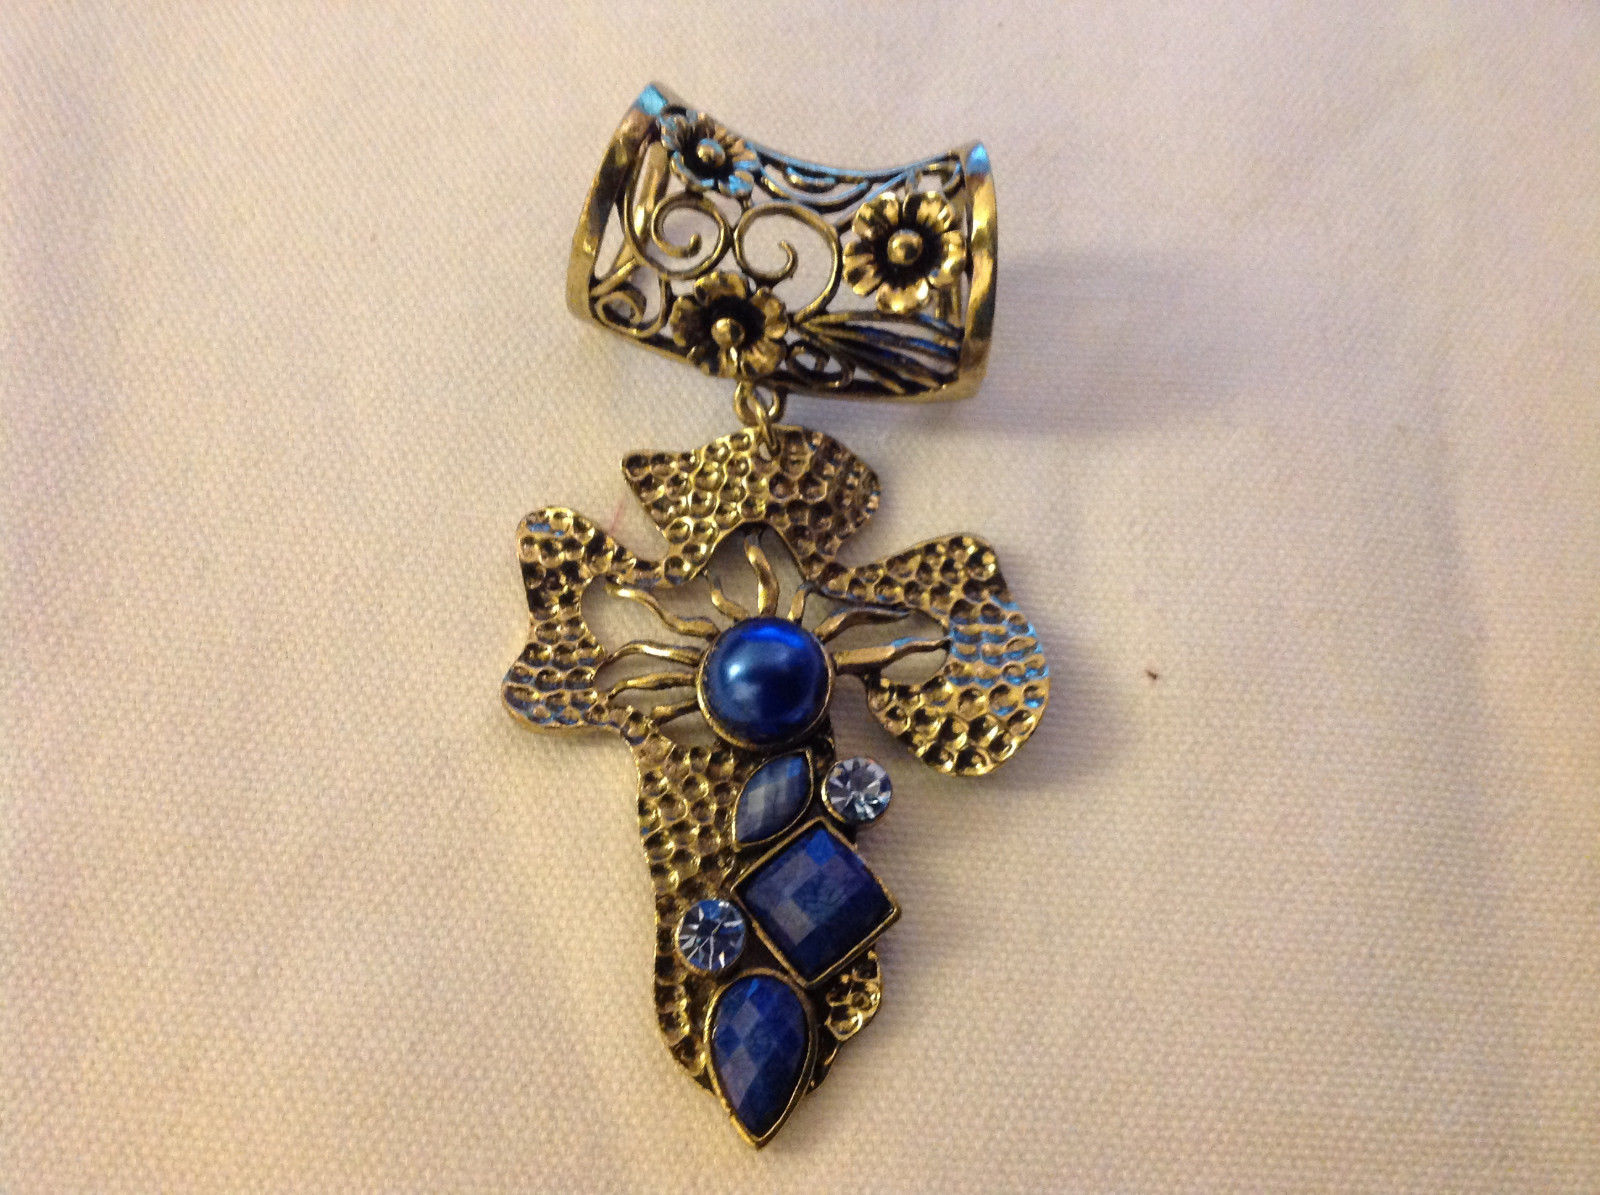 Gold Tone Cross Shape with Light and Dark Blue Crystals Scarf Pendant 4 Inches